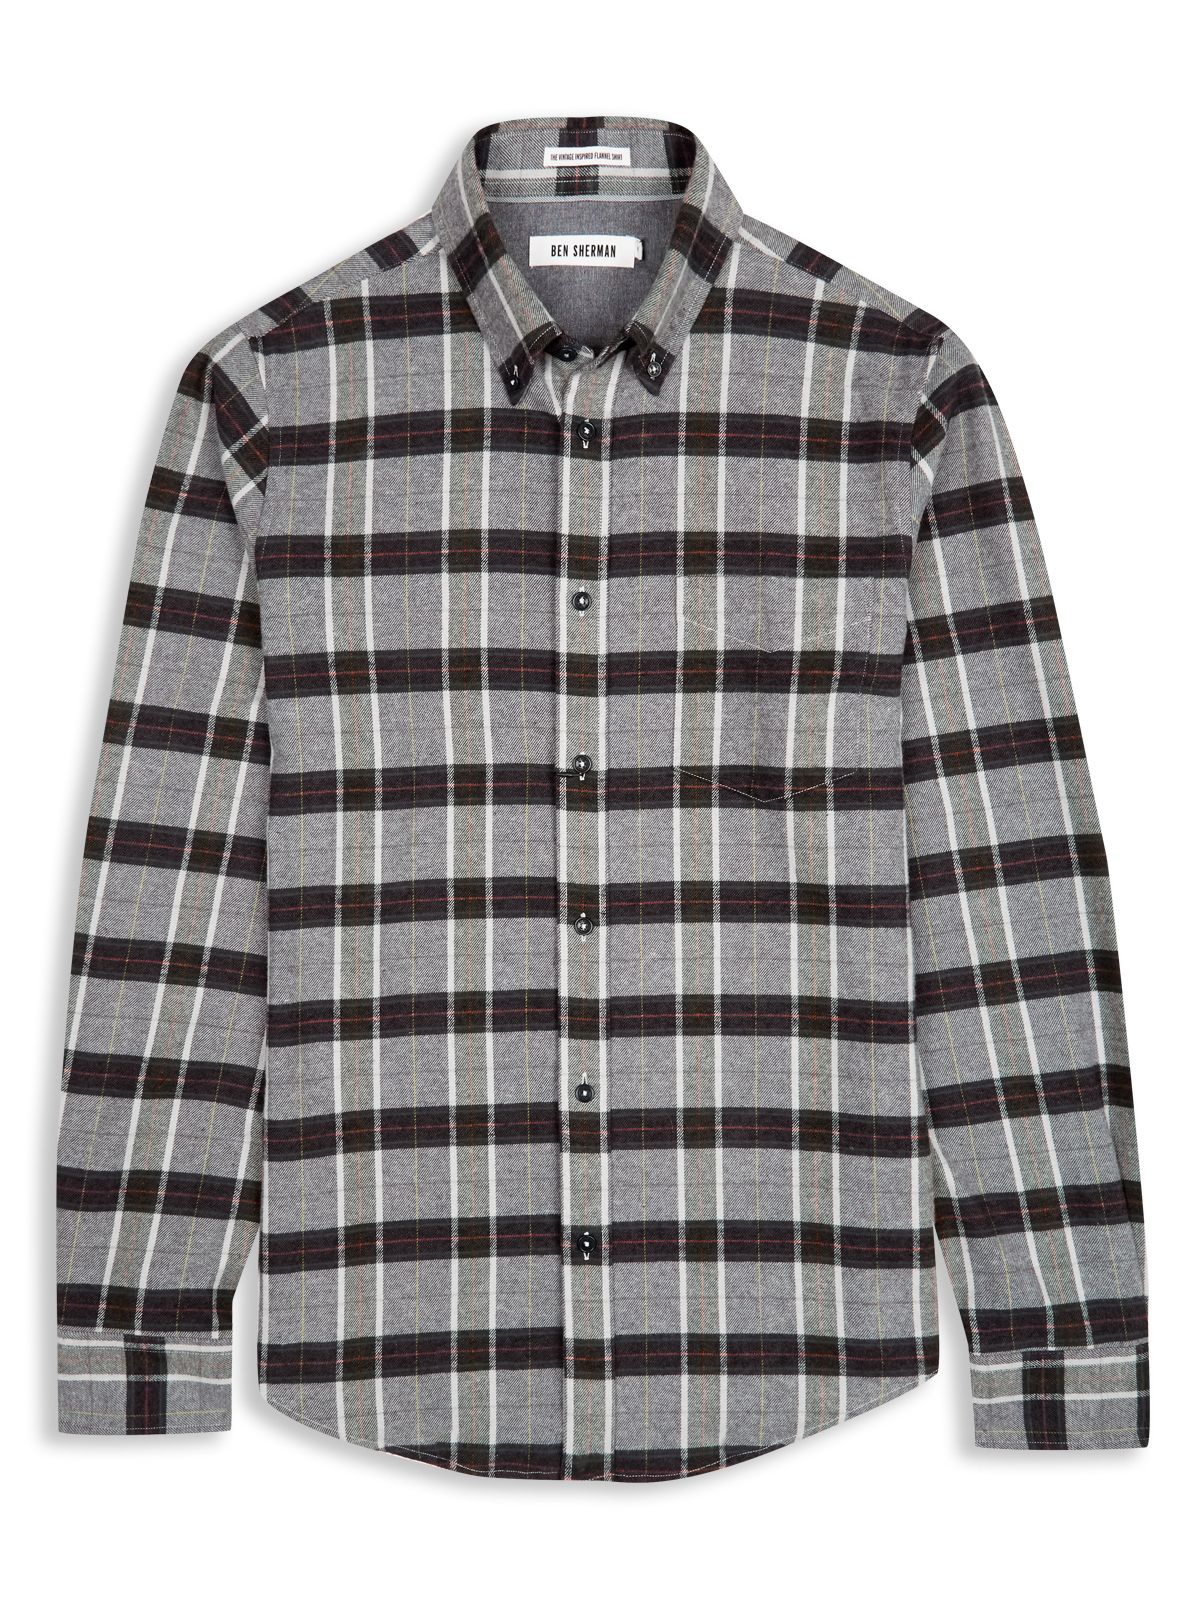 Ben sherman brushed flannel twill tartan check shirt in for Brushed cotton twill shirt